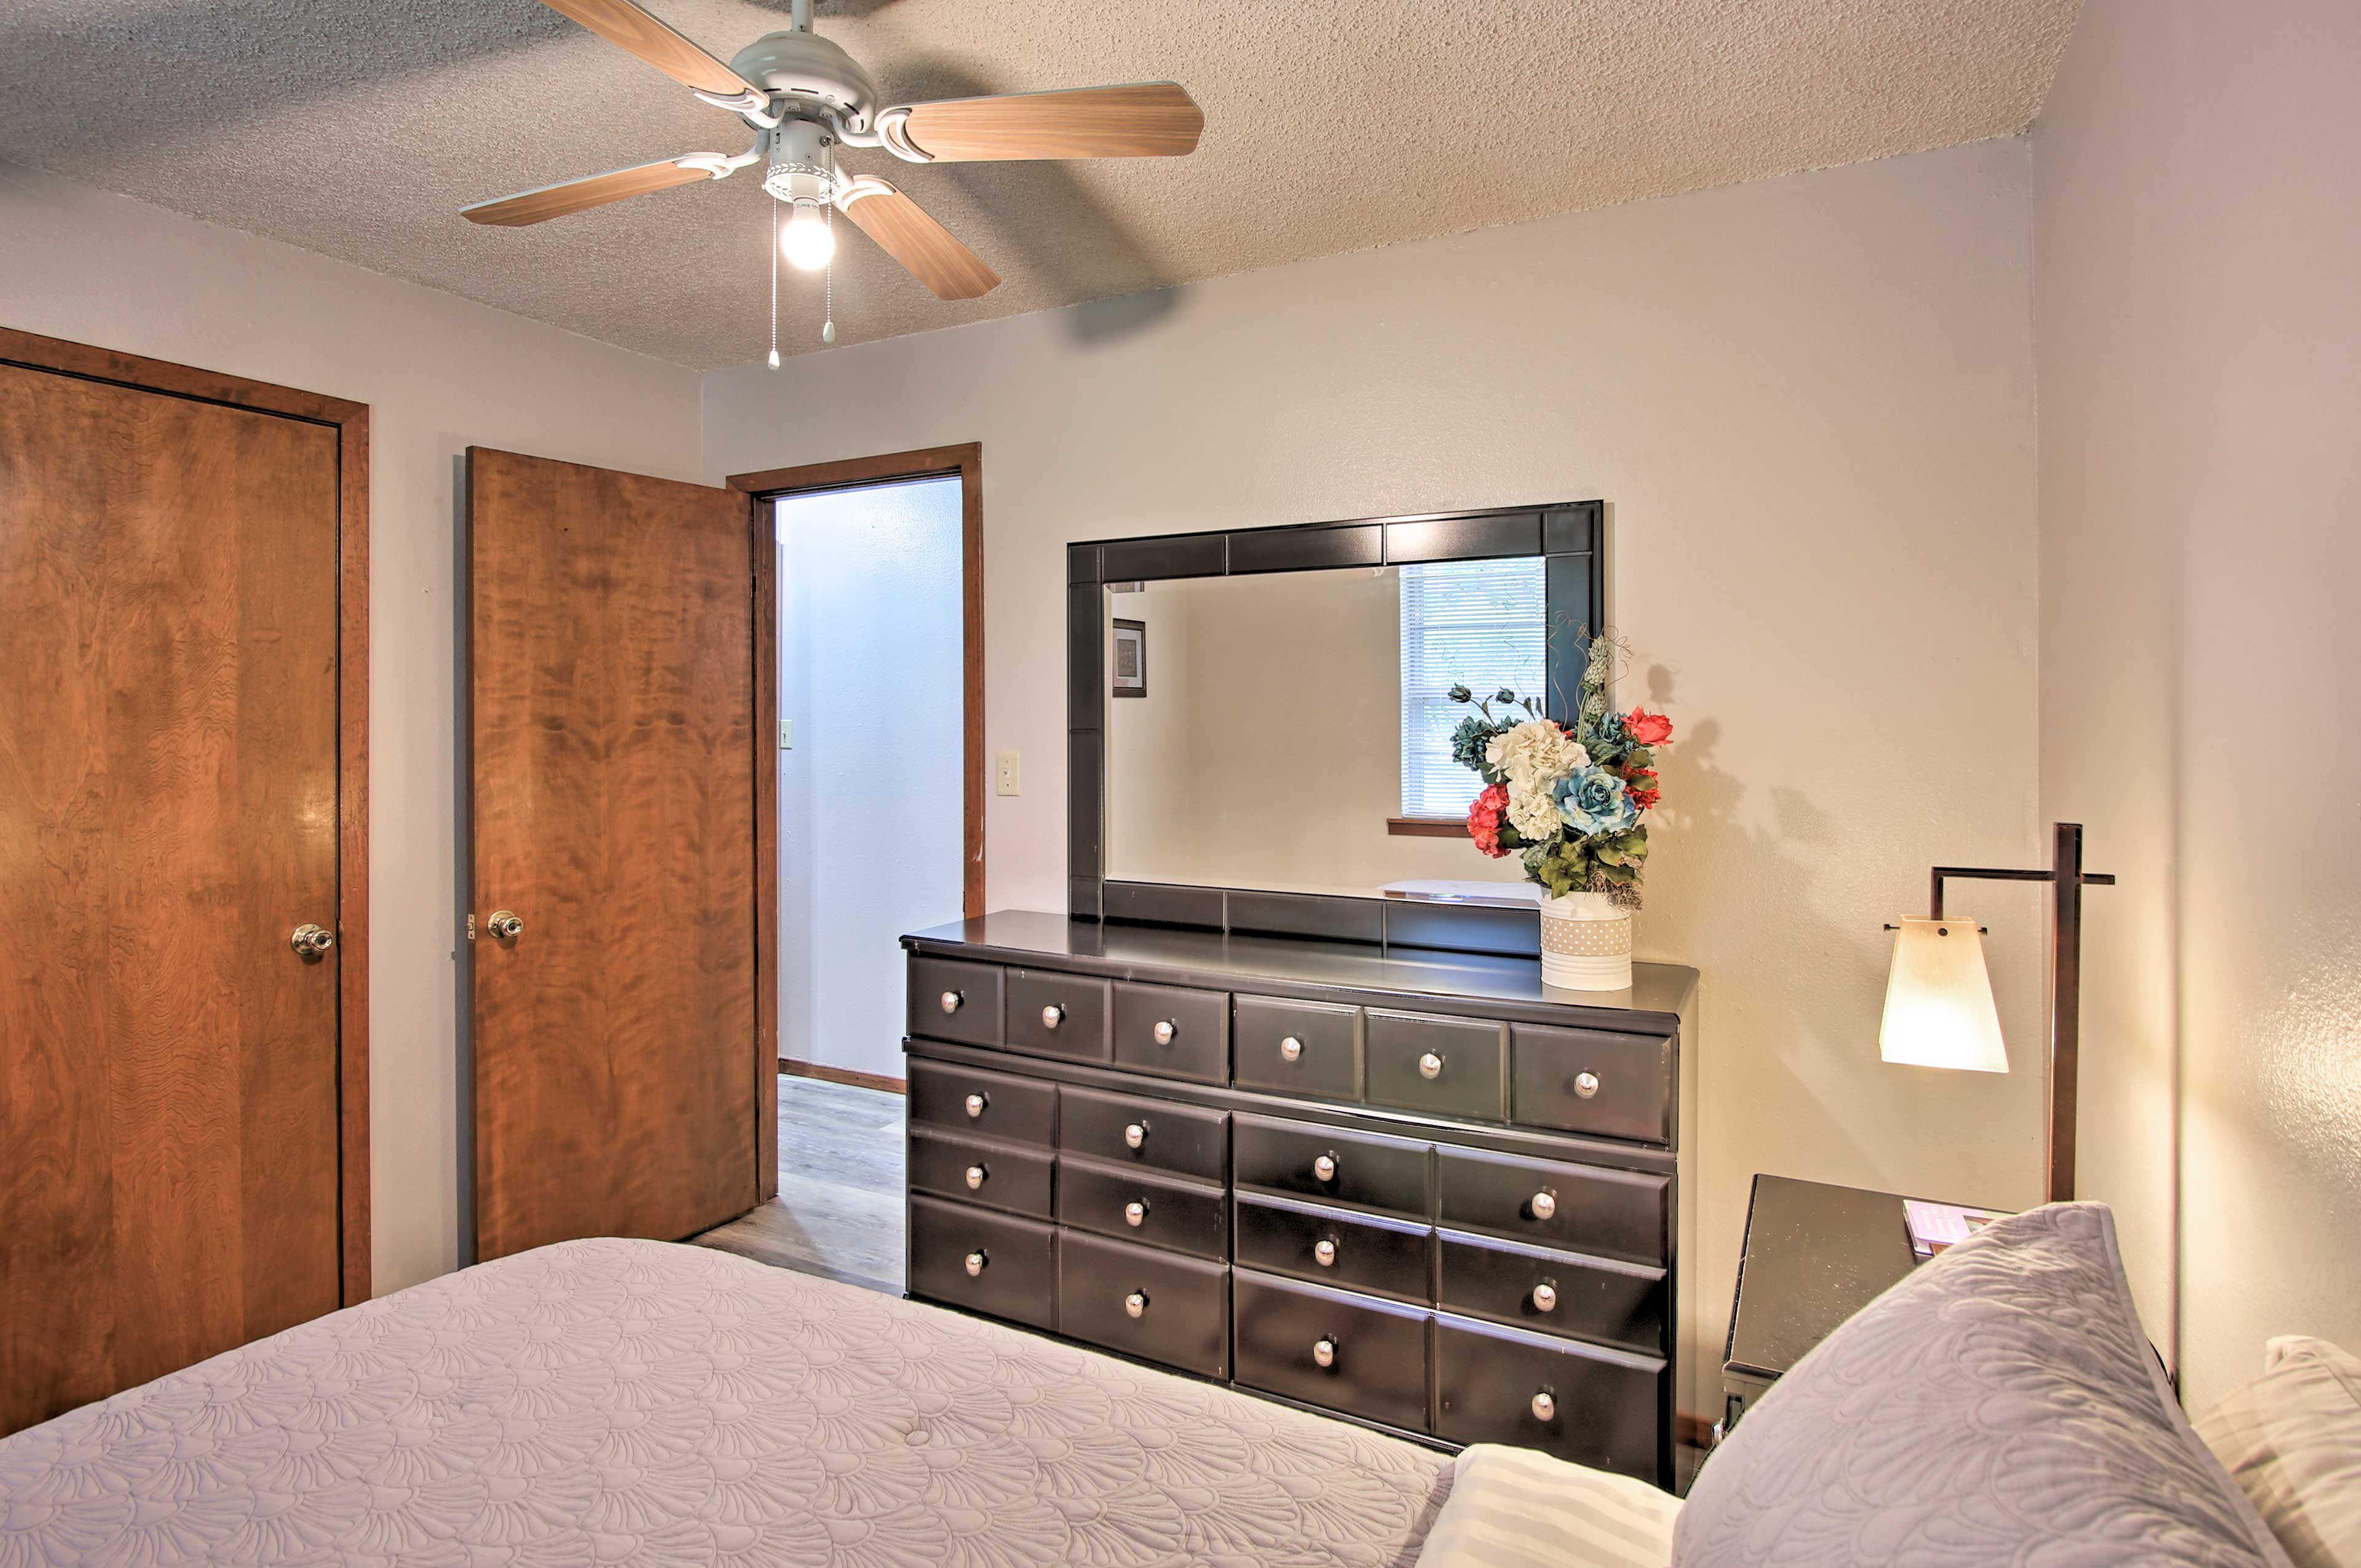 The closet and dresser provide plenty of space for you to store your clothing.